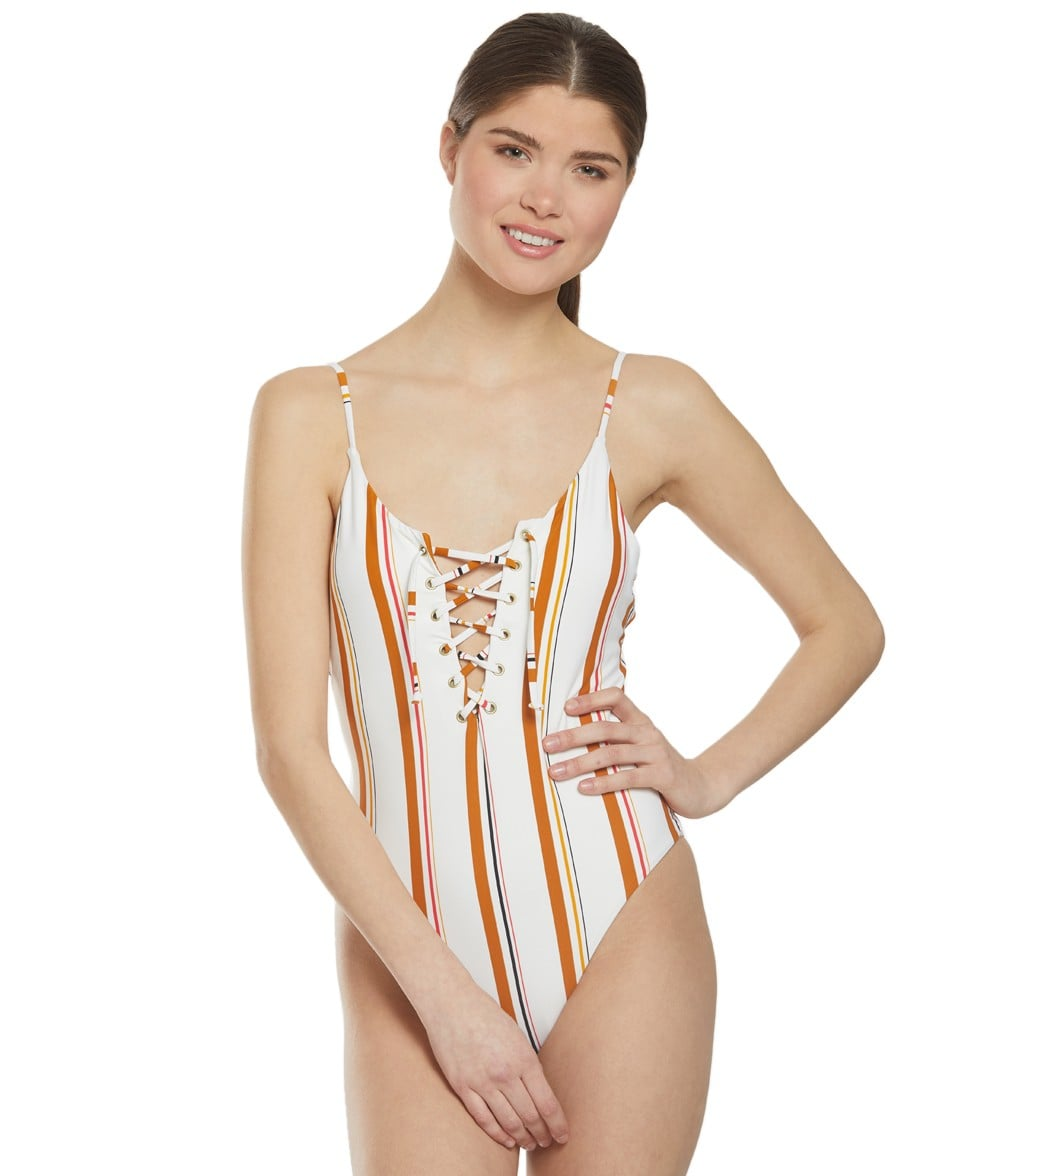 914c807acbd Billabong Sunstruck One Piece Swimsuit at SwimOutlet.com - Free Shipping